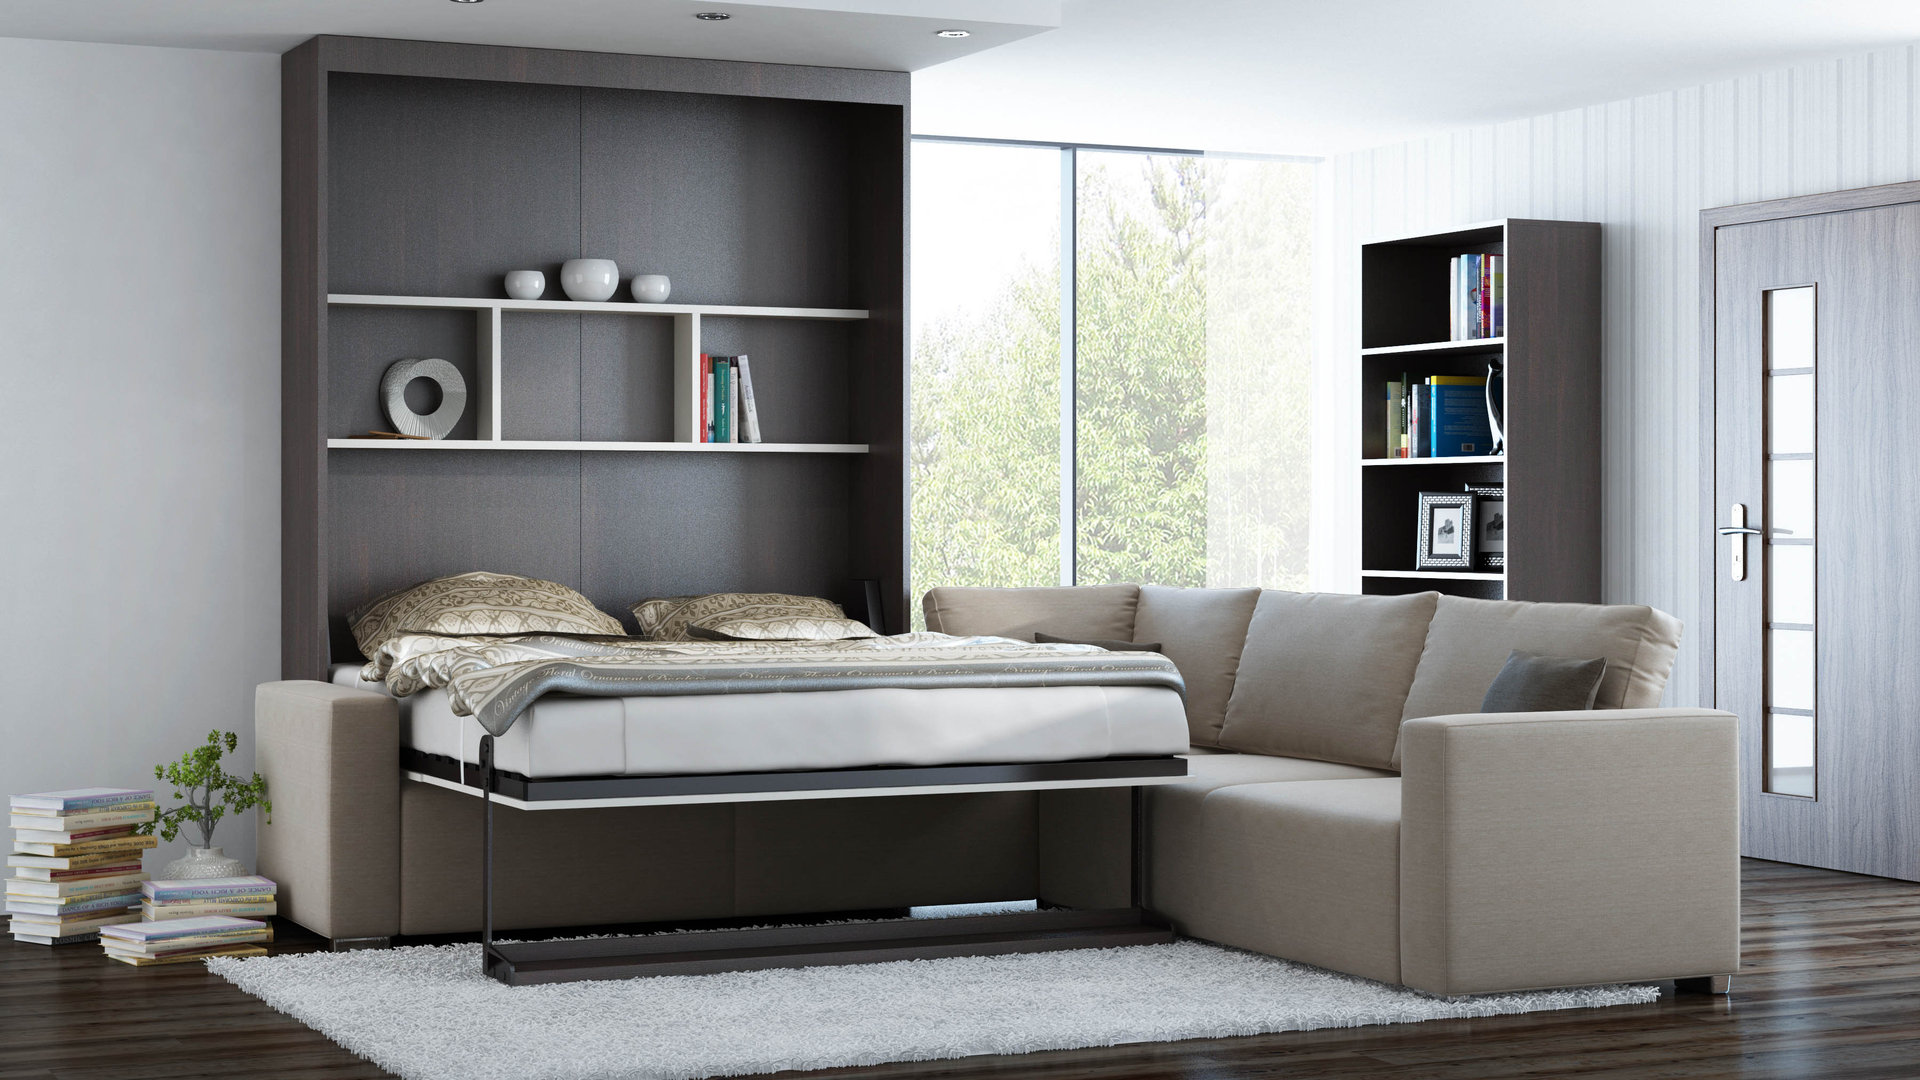 ts m bel wandbett mit sofa ecke leggio linea std std 160 x 200 cm. Black Bedroom Furniture Sets. Home Design Ideas